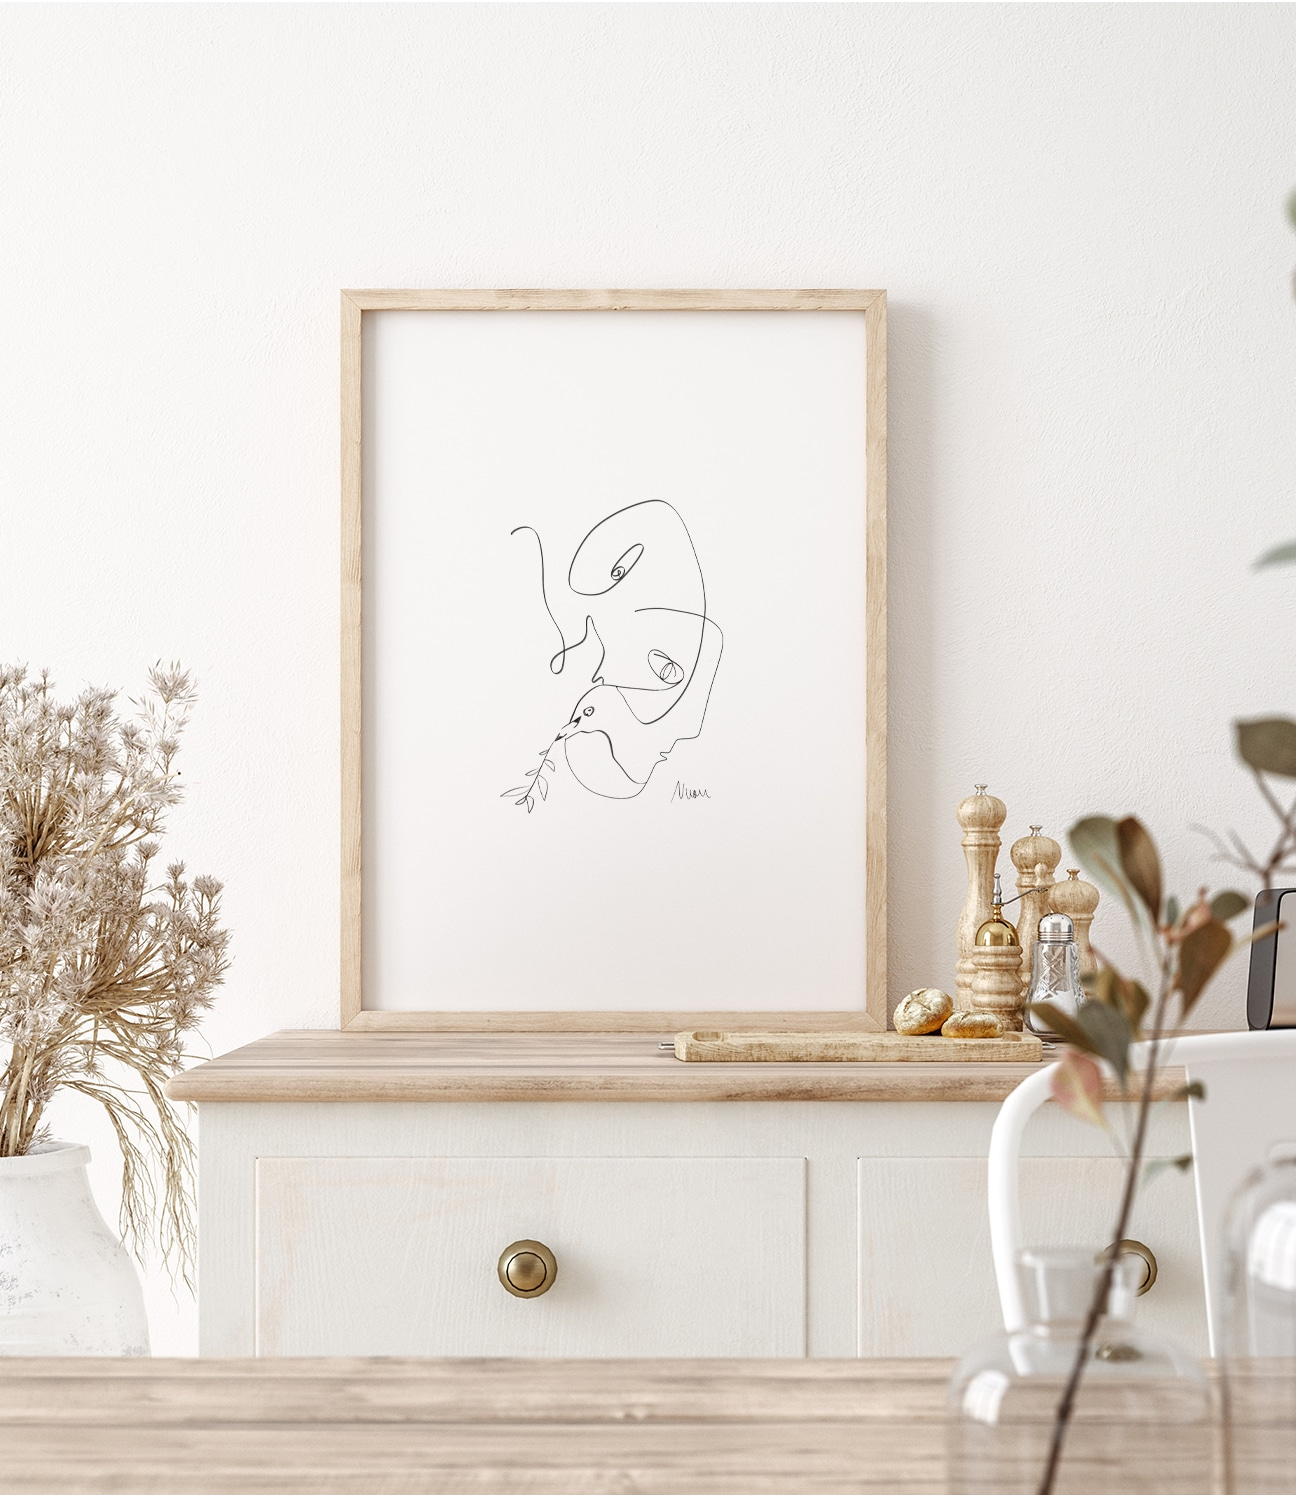 Parlez-vous la Paix? is part of a modern triptych inspired by Picasso's famous 'Dove of Peace'. The main subject of this series is to explore the relatedness and cognitive abilities in between men and birds | Art by Ninon